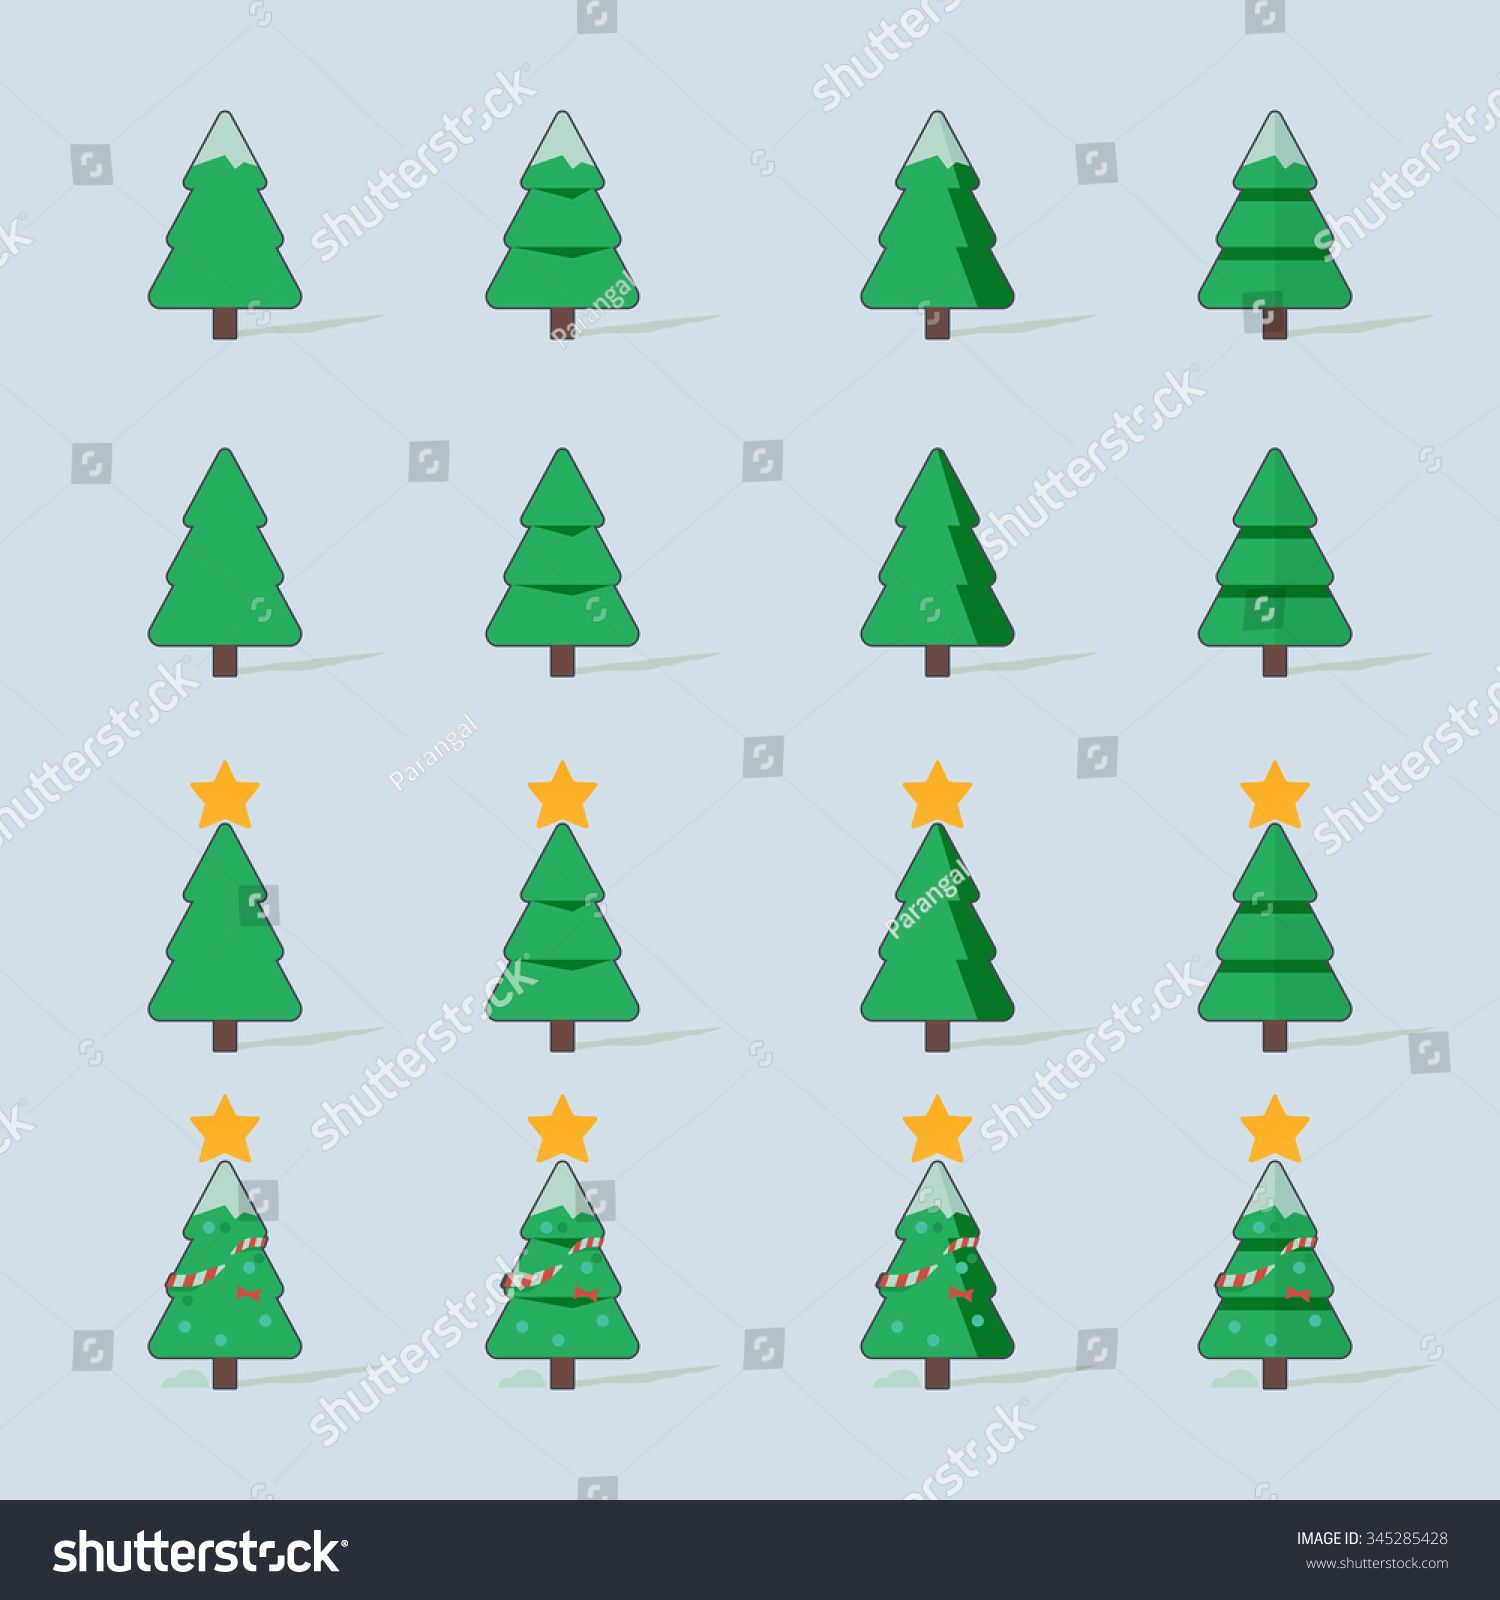 Christmas Trees Vector Illustration Set Ad Ad Trees Christmas Vector Set In 2020 Background Images Royalty Free Stock Photos Abstract Design